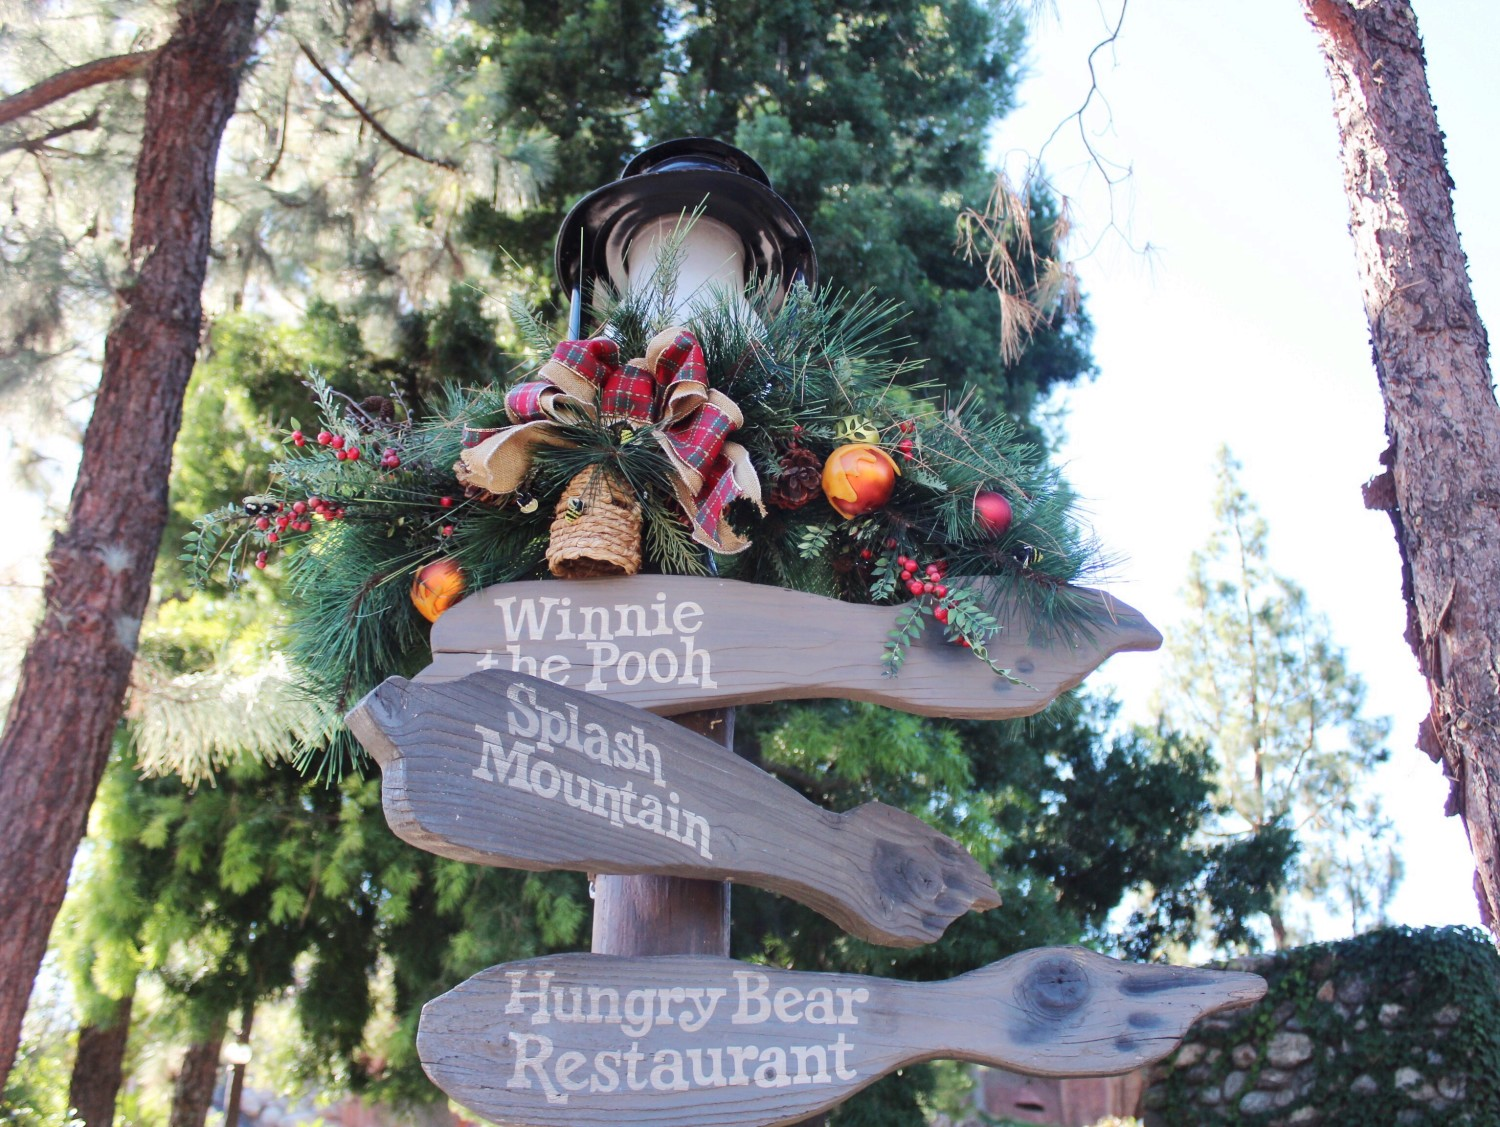 Disneyland Critter Country During the Holidays